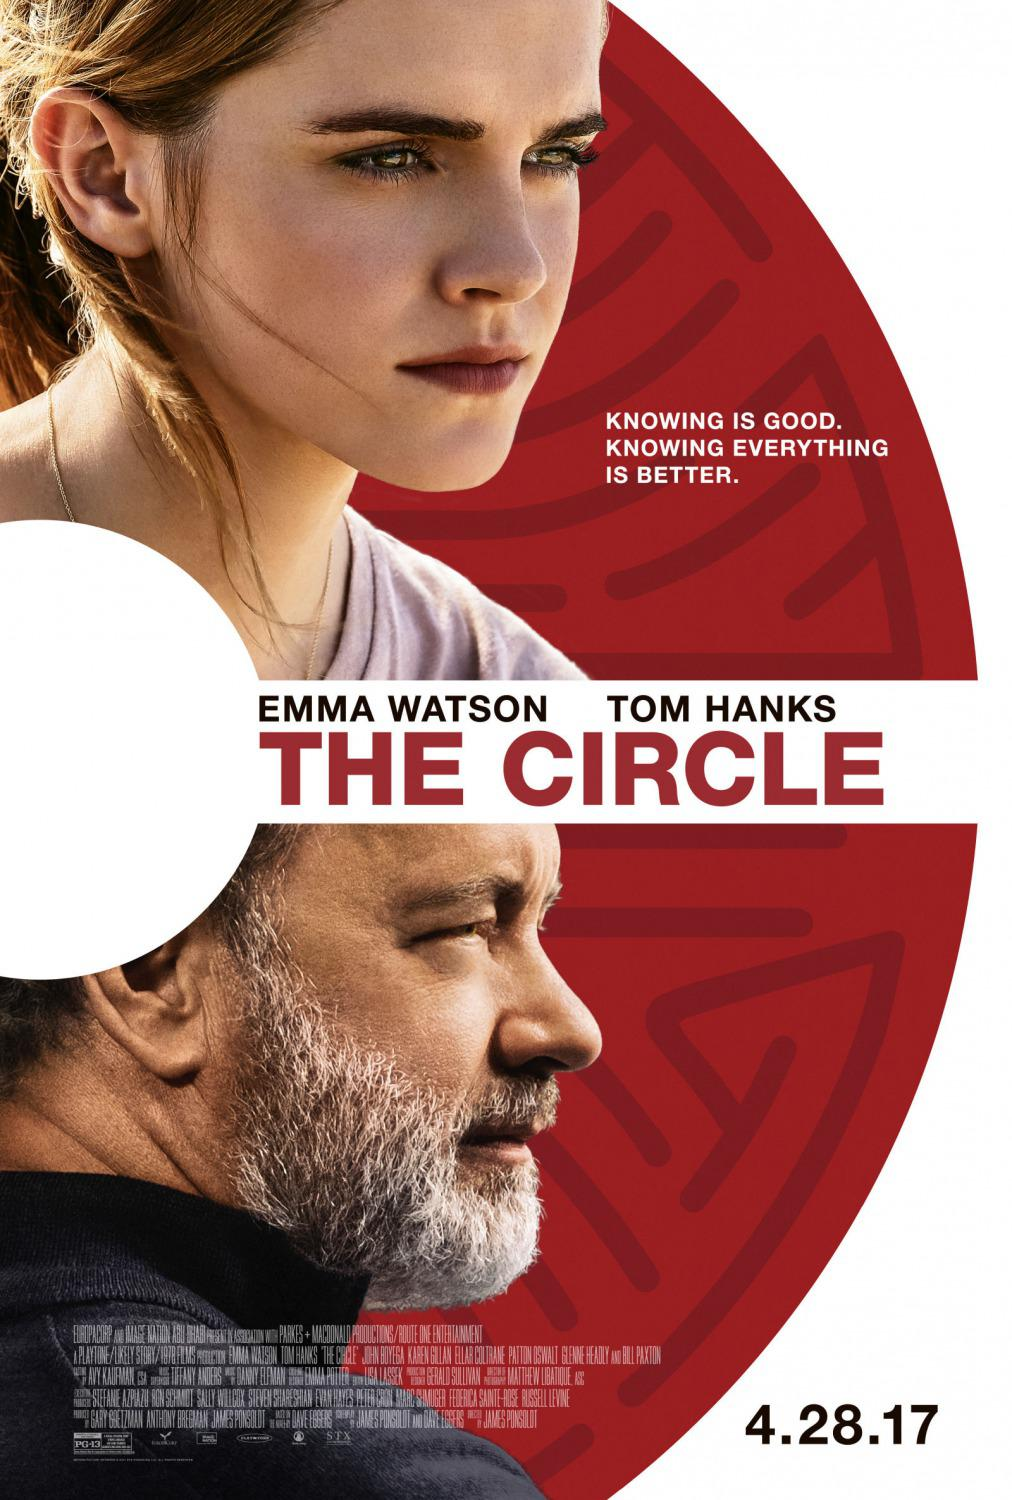 The Circle - Emma Watson - Tom Hanks - poster